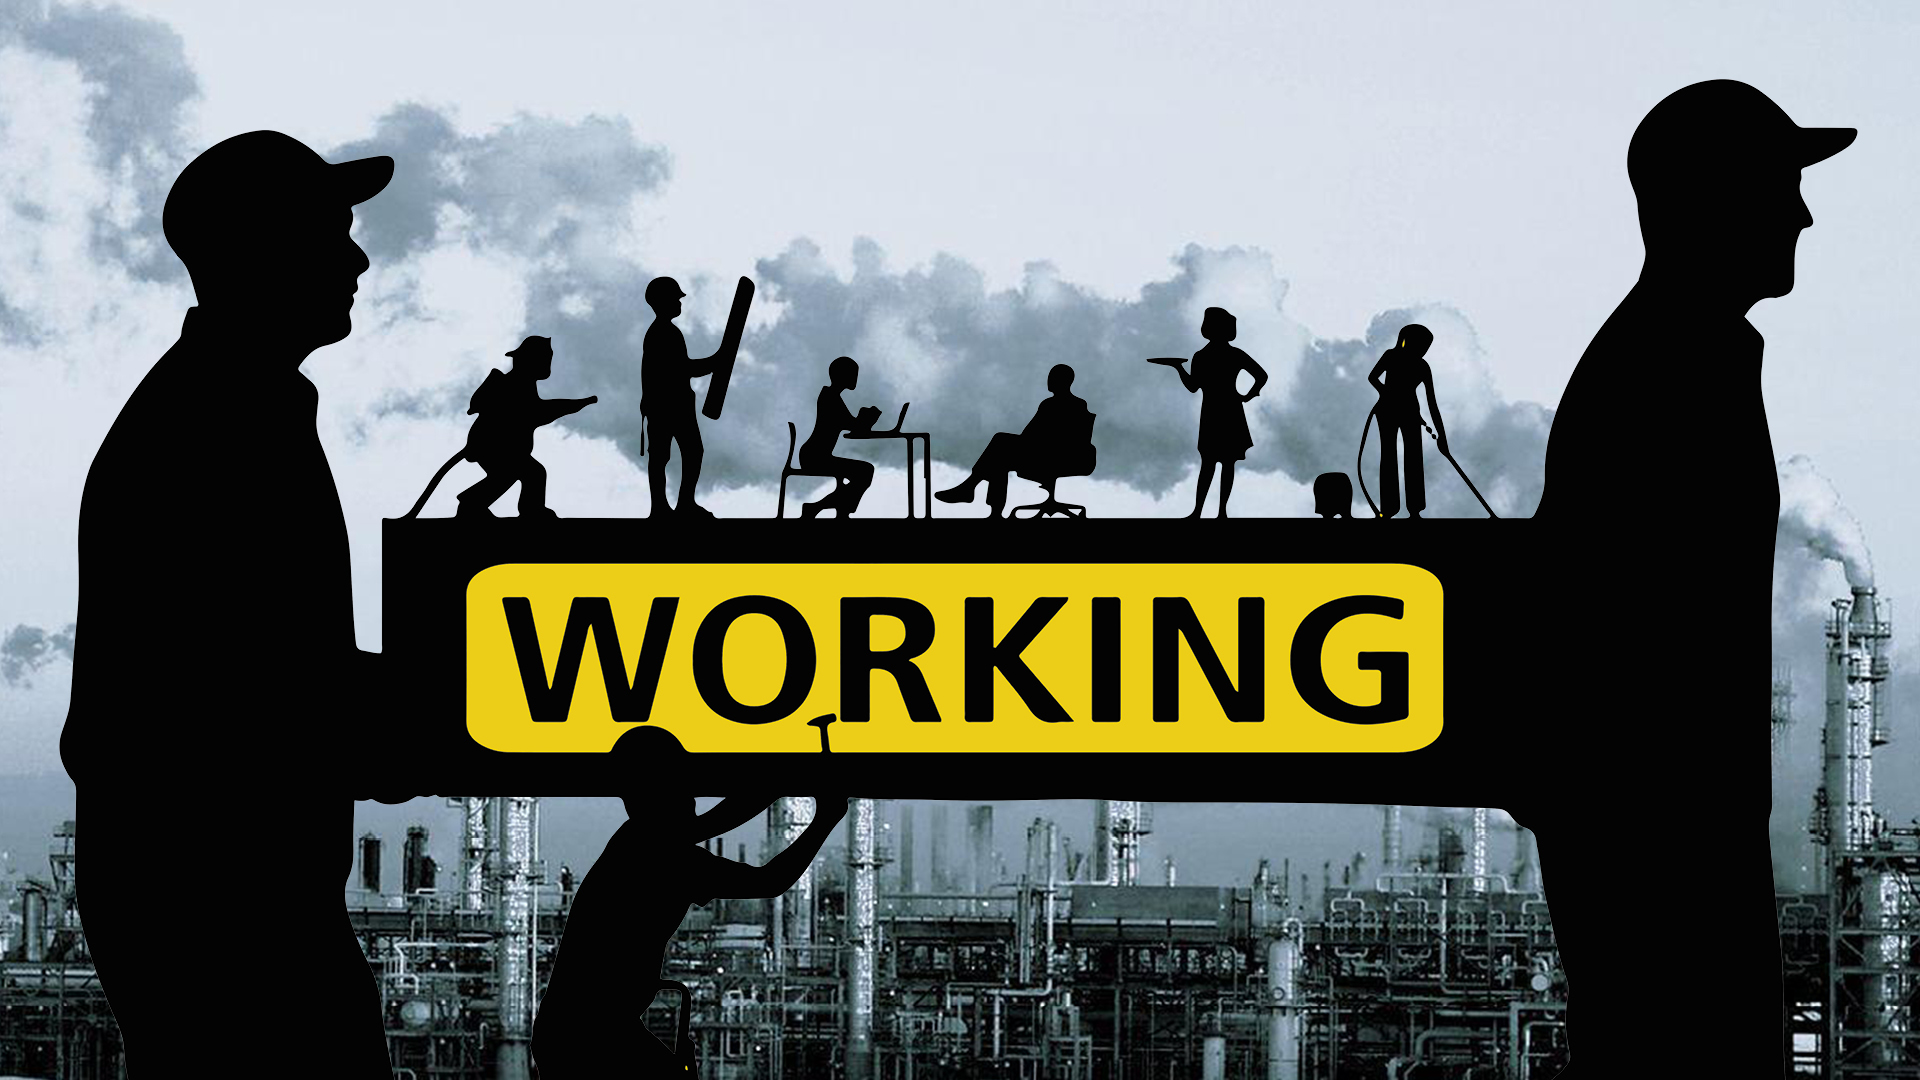 """The Western Washington University Department of Theatre and Dance will perform """"Working, a musical"""" based on the book by Studs Terkel. Performances run December 5 through 8 on the Performing Arts Center Mainstage."""